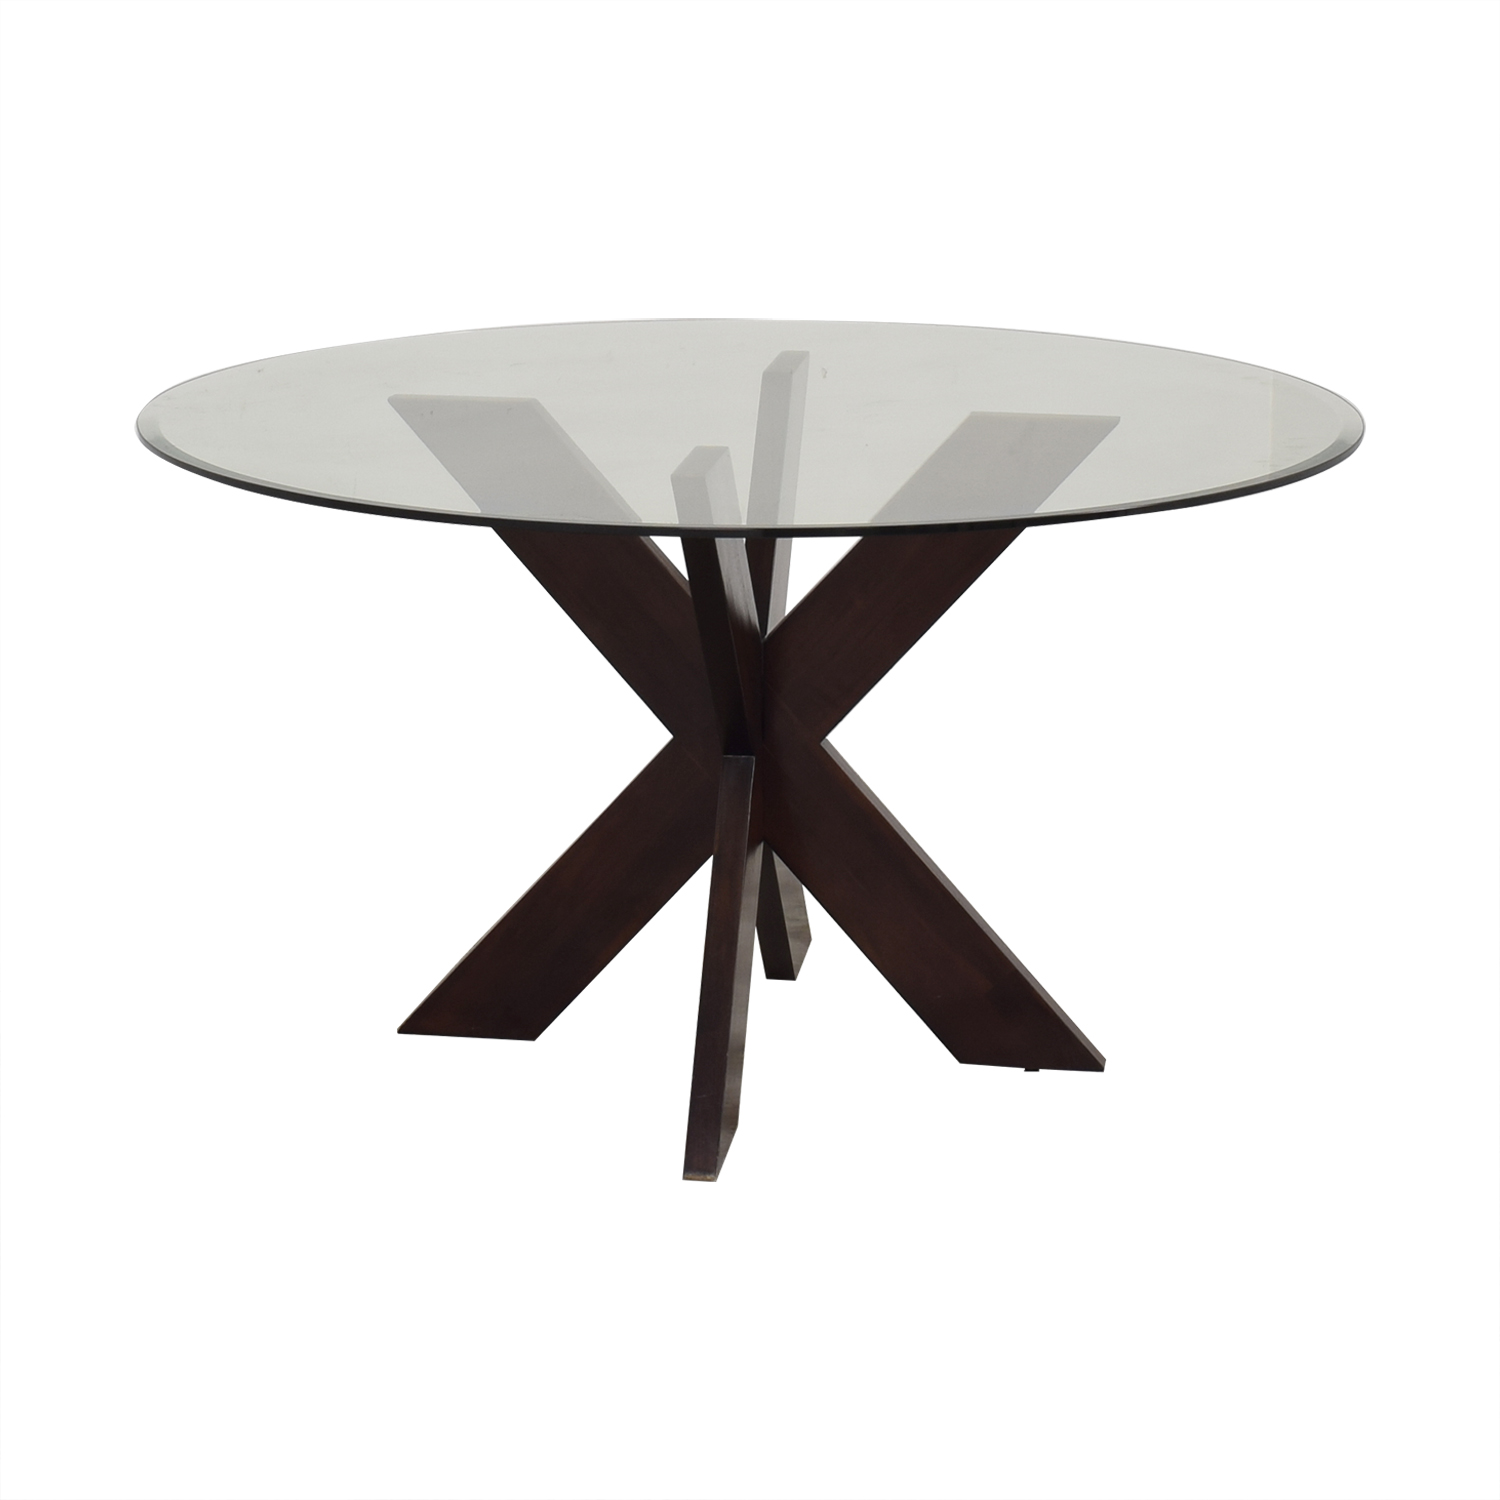 9 OFF   Pier 9 Pier 9 X Base Dining Table with Glass Top / Tables